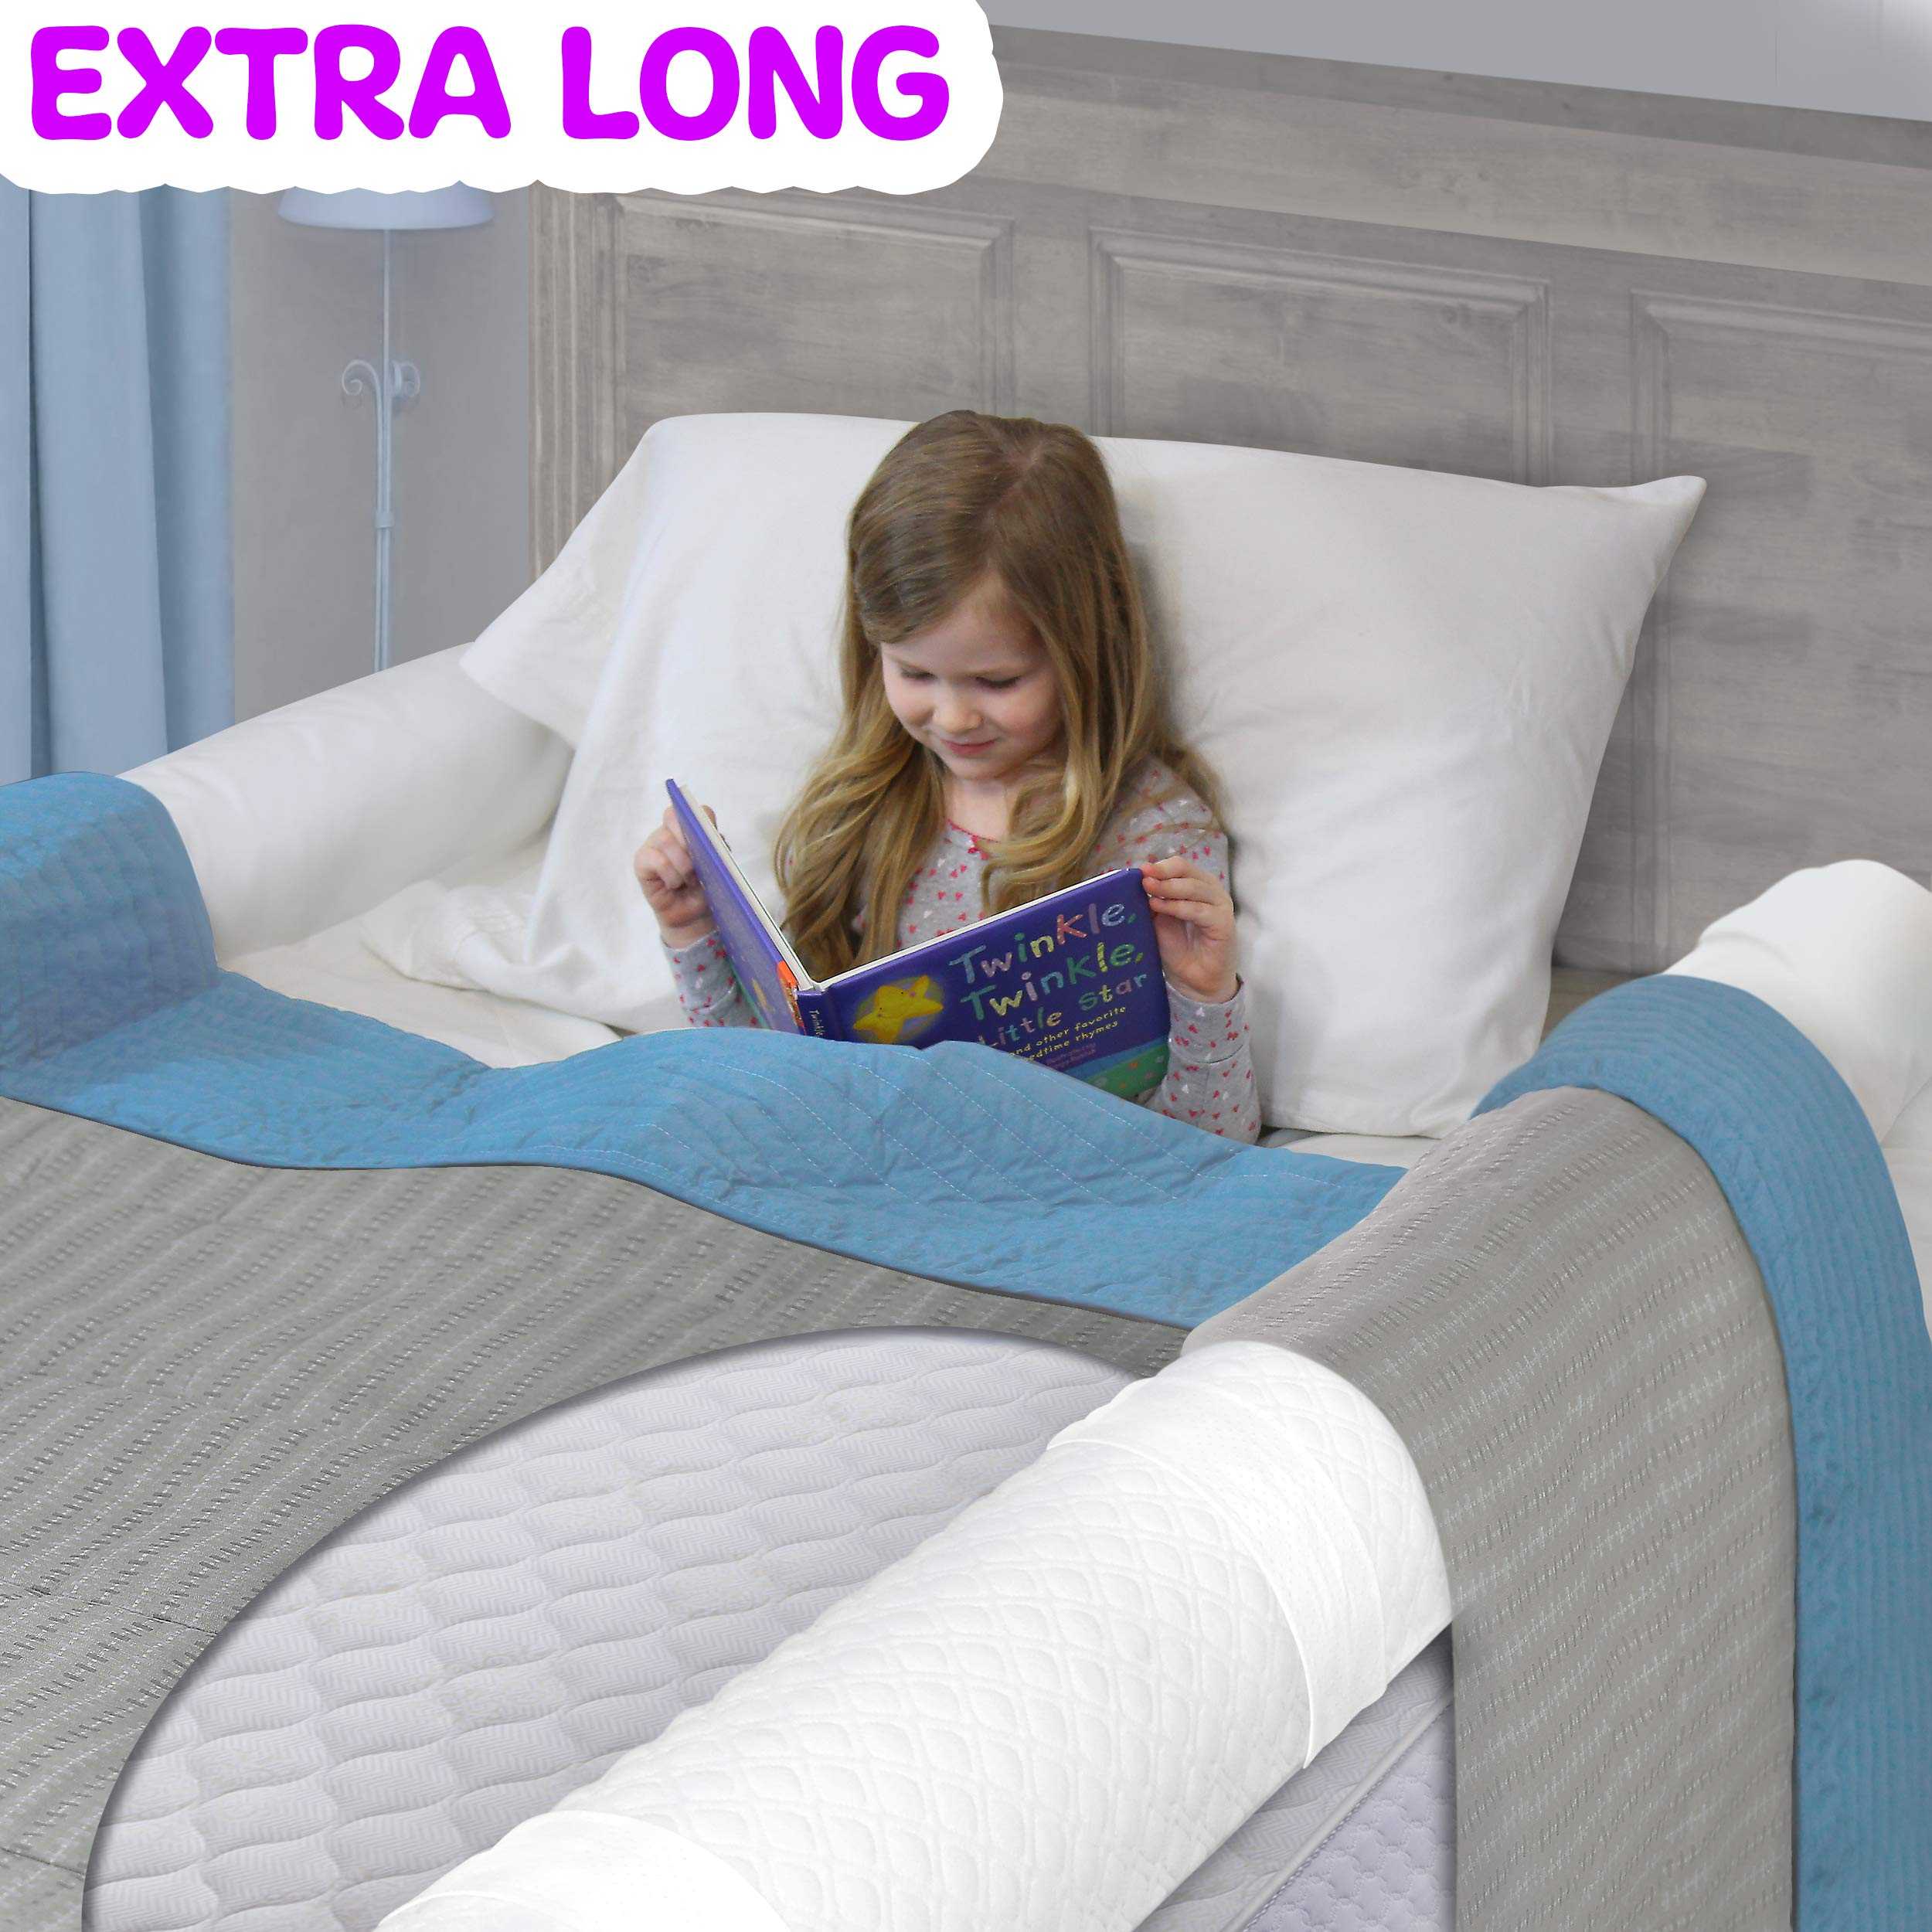 [2-Pack] Extra Long Bed Rails for Toddler | Soft Foam Bed Bumper for Kids, Special Needs, Elderly | Baby Bed Guard | Child Bed Safety Side Rails With Water Resistant Washable Cover by BuBumper (Image #1)